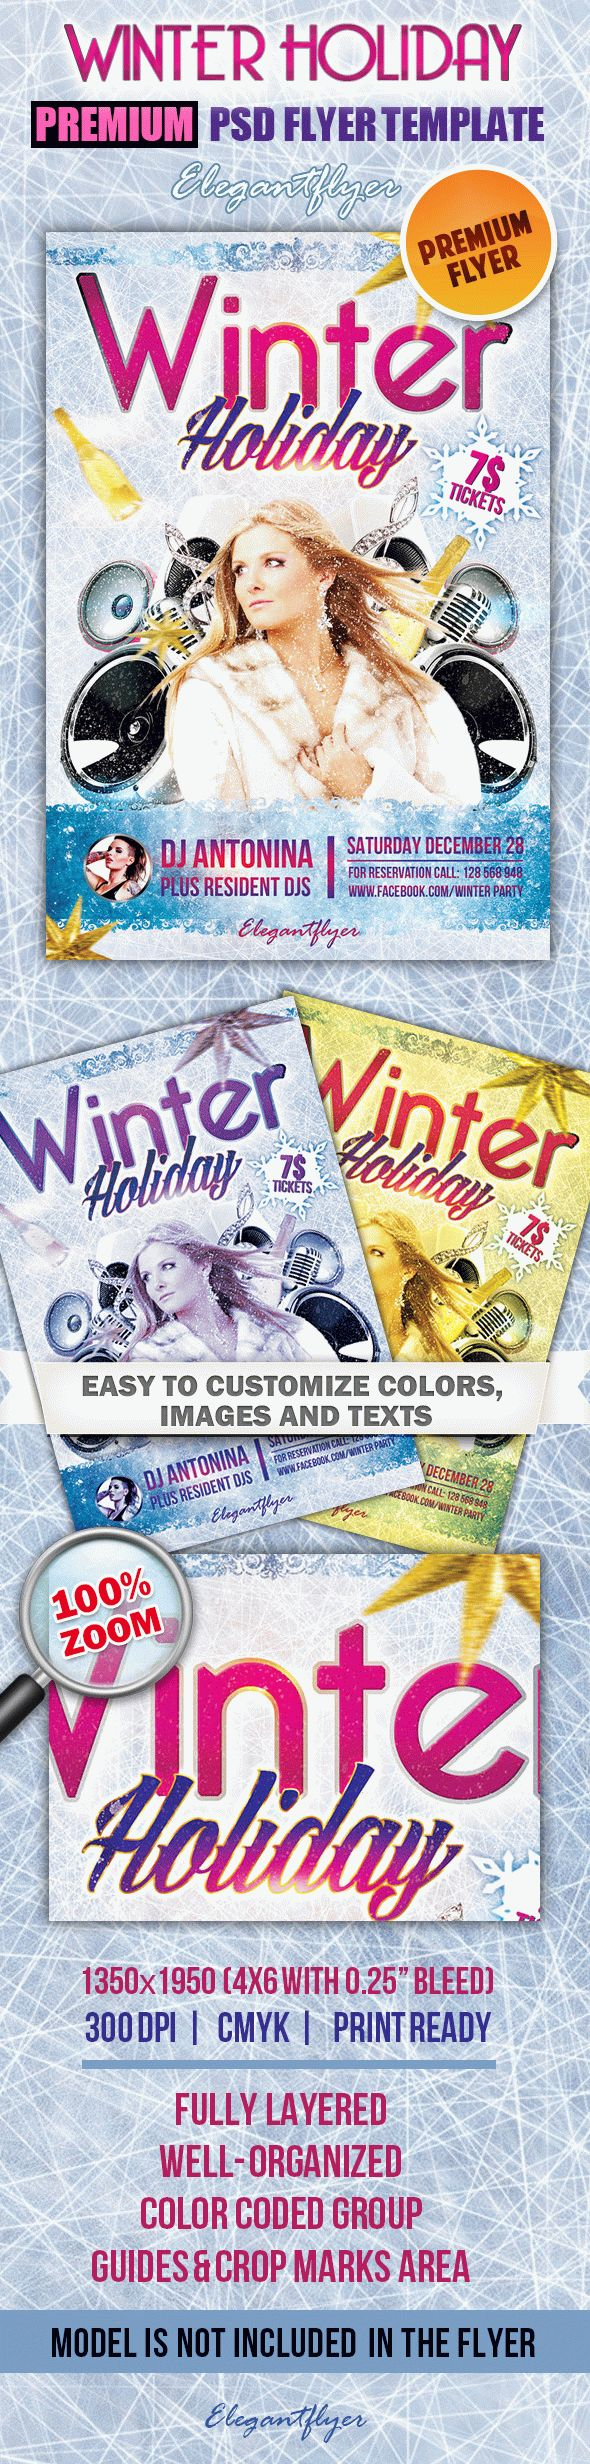 Winter Holiday – Premium Club flyer PSD Template